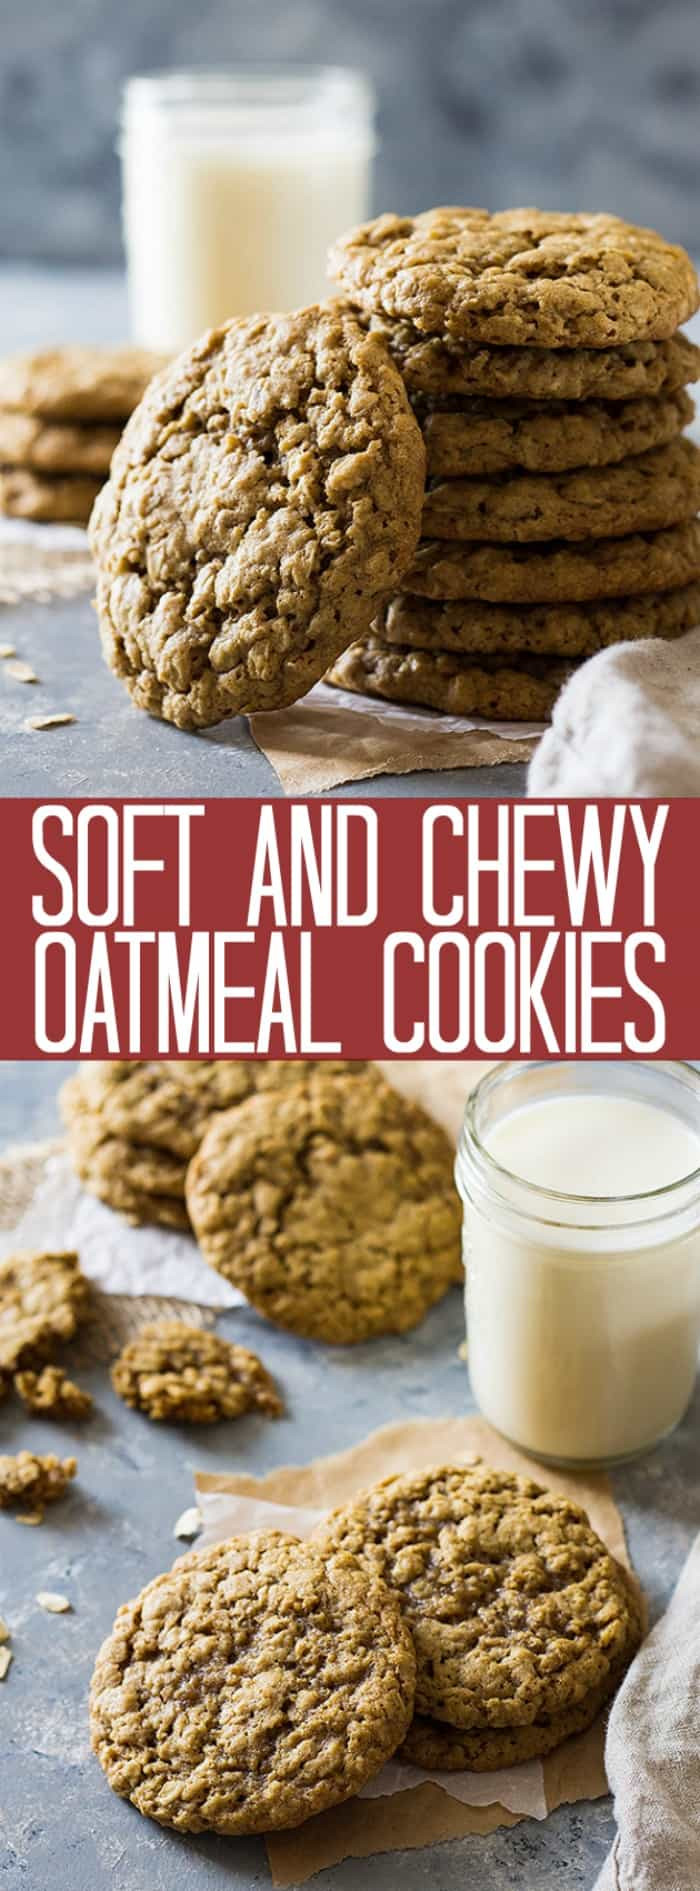 Best Chewy Oatmeal Cookies  Soft and Chewy Oatmeal Cookies